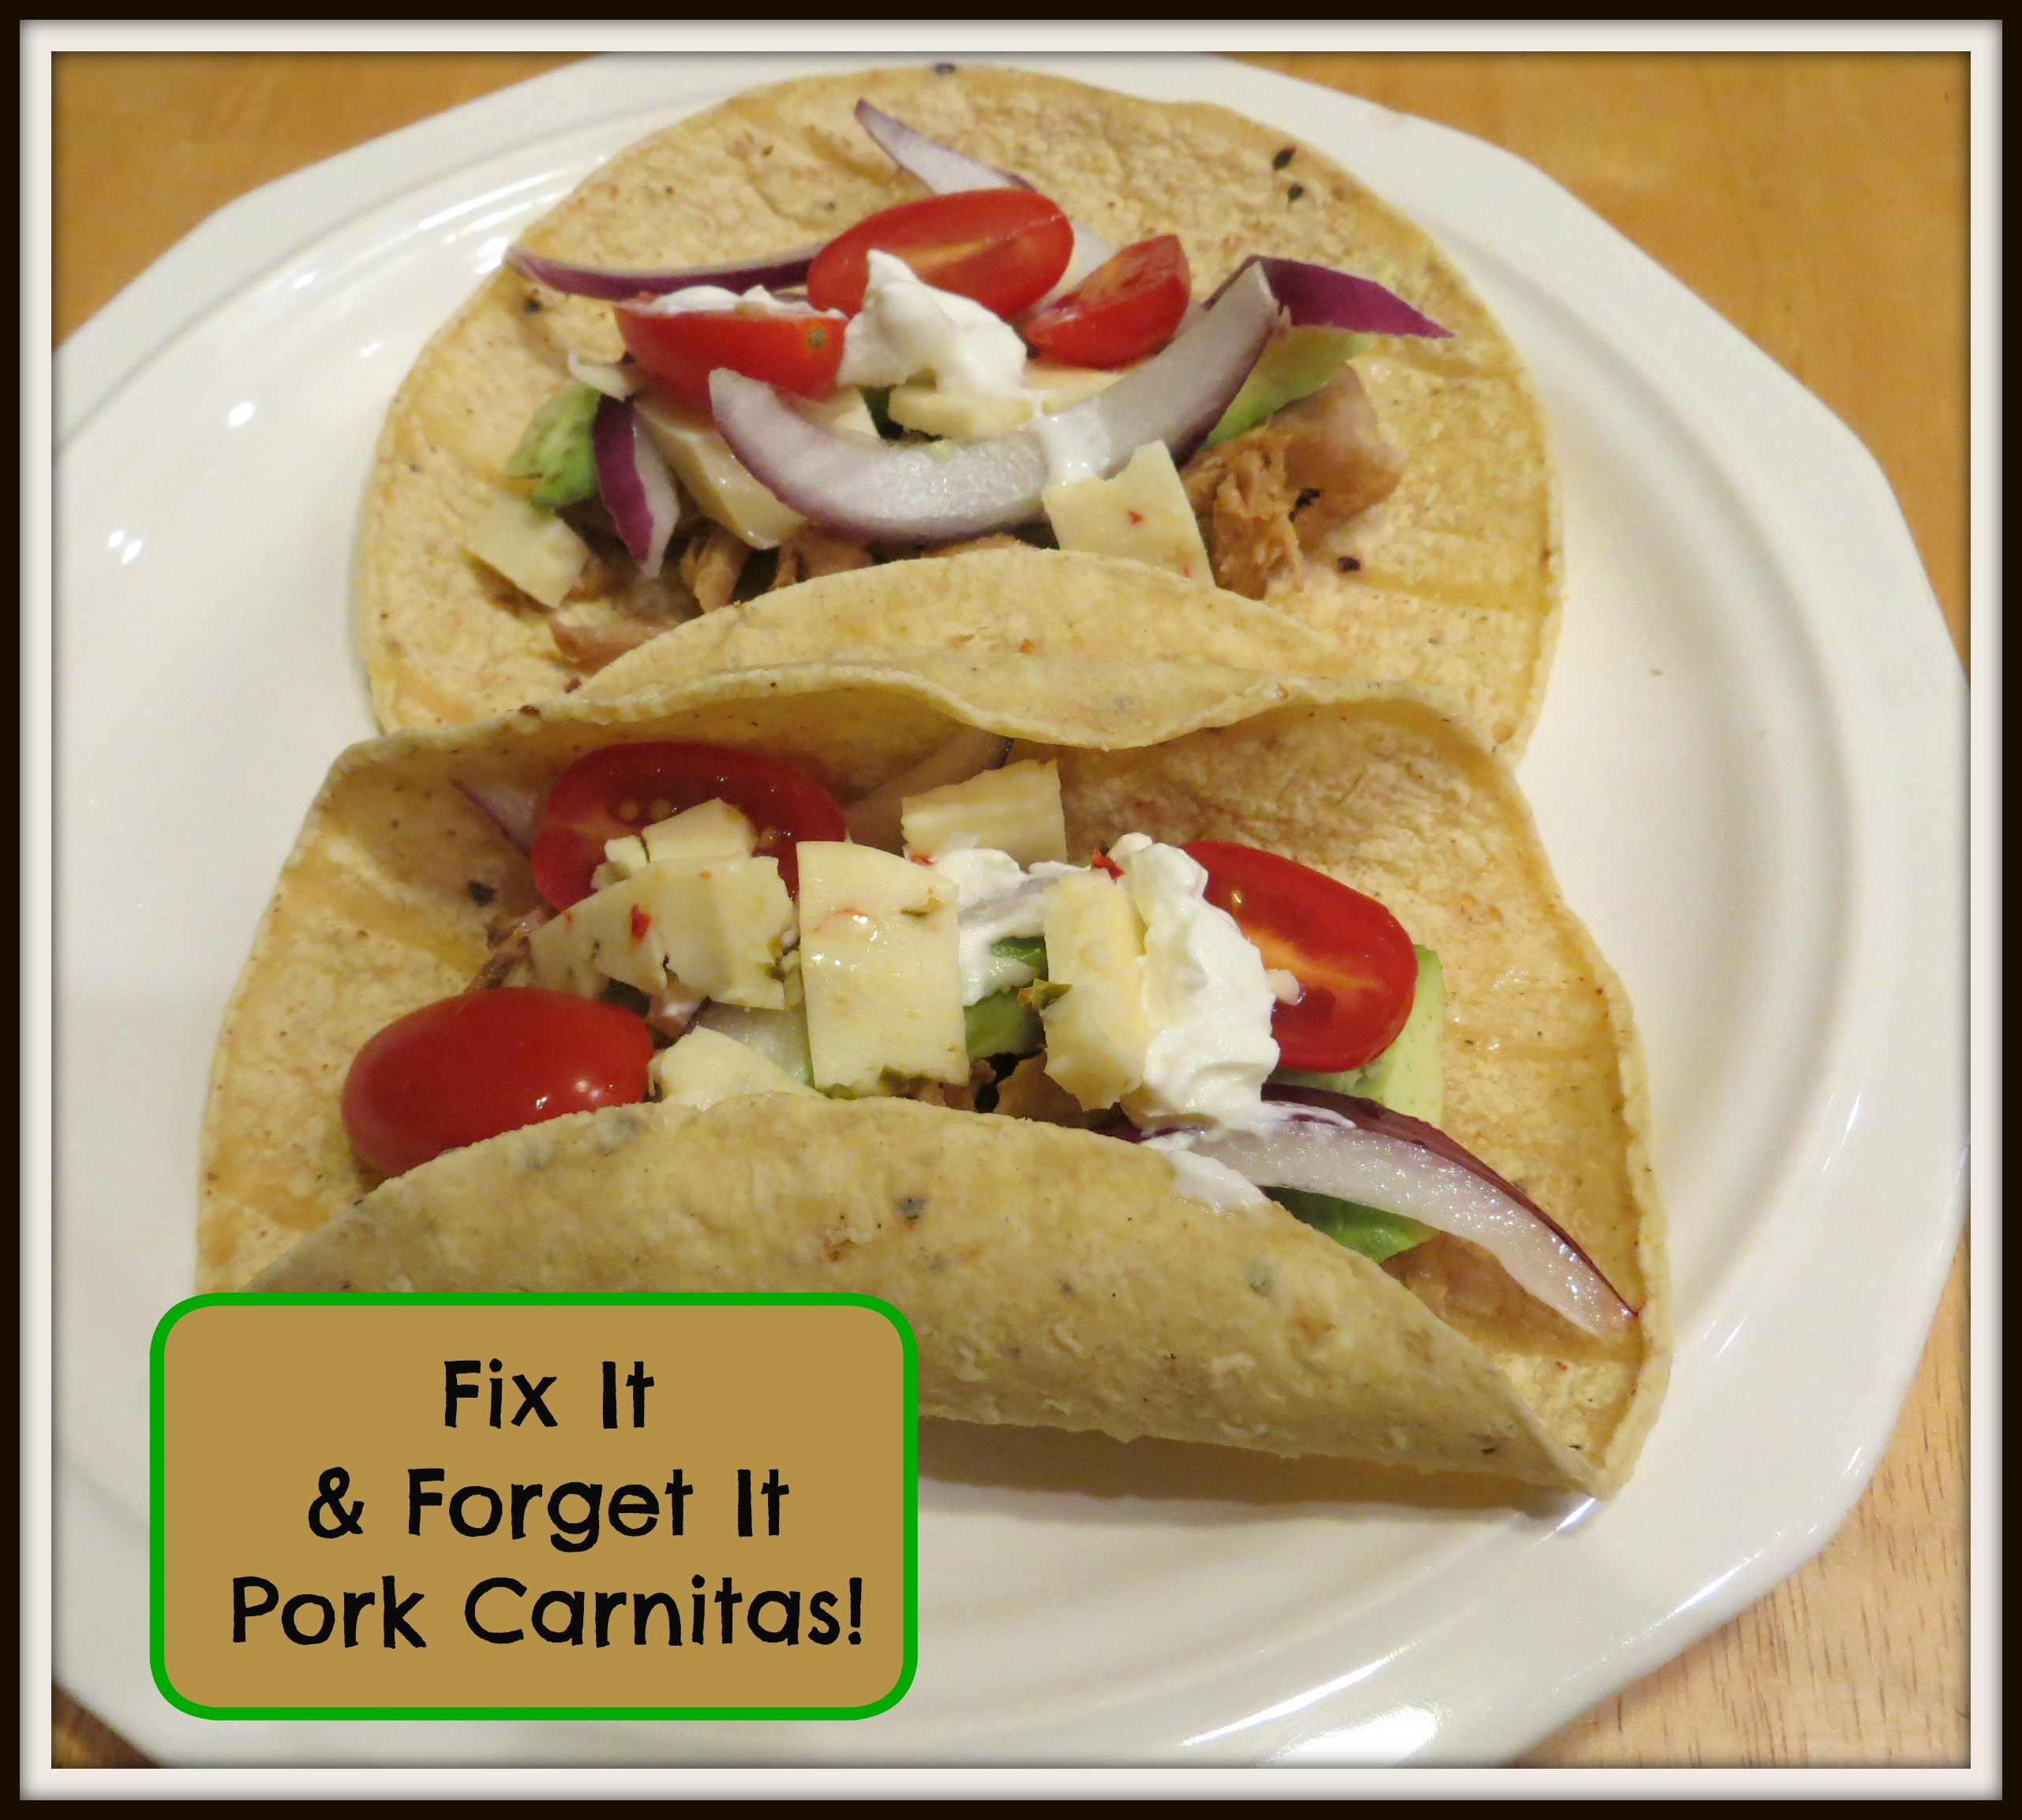 Fix It and Forget It Pork Carnitas